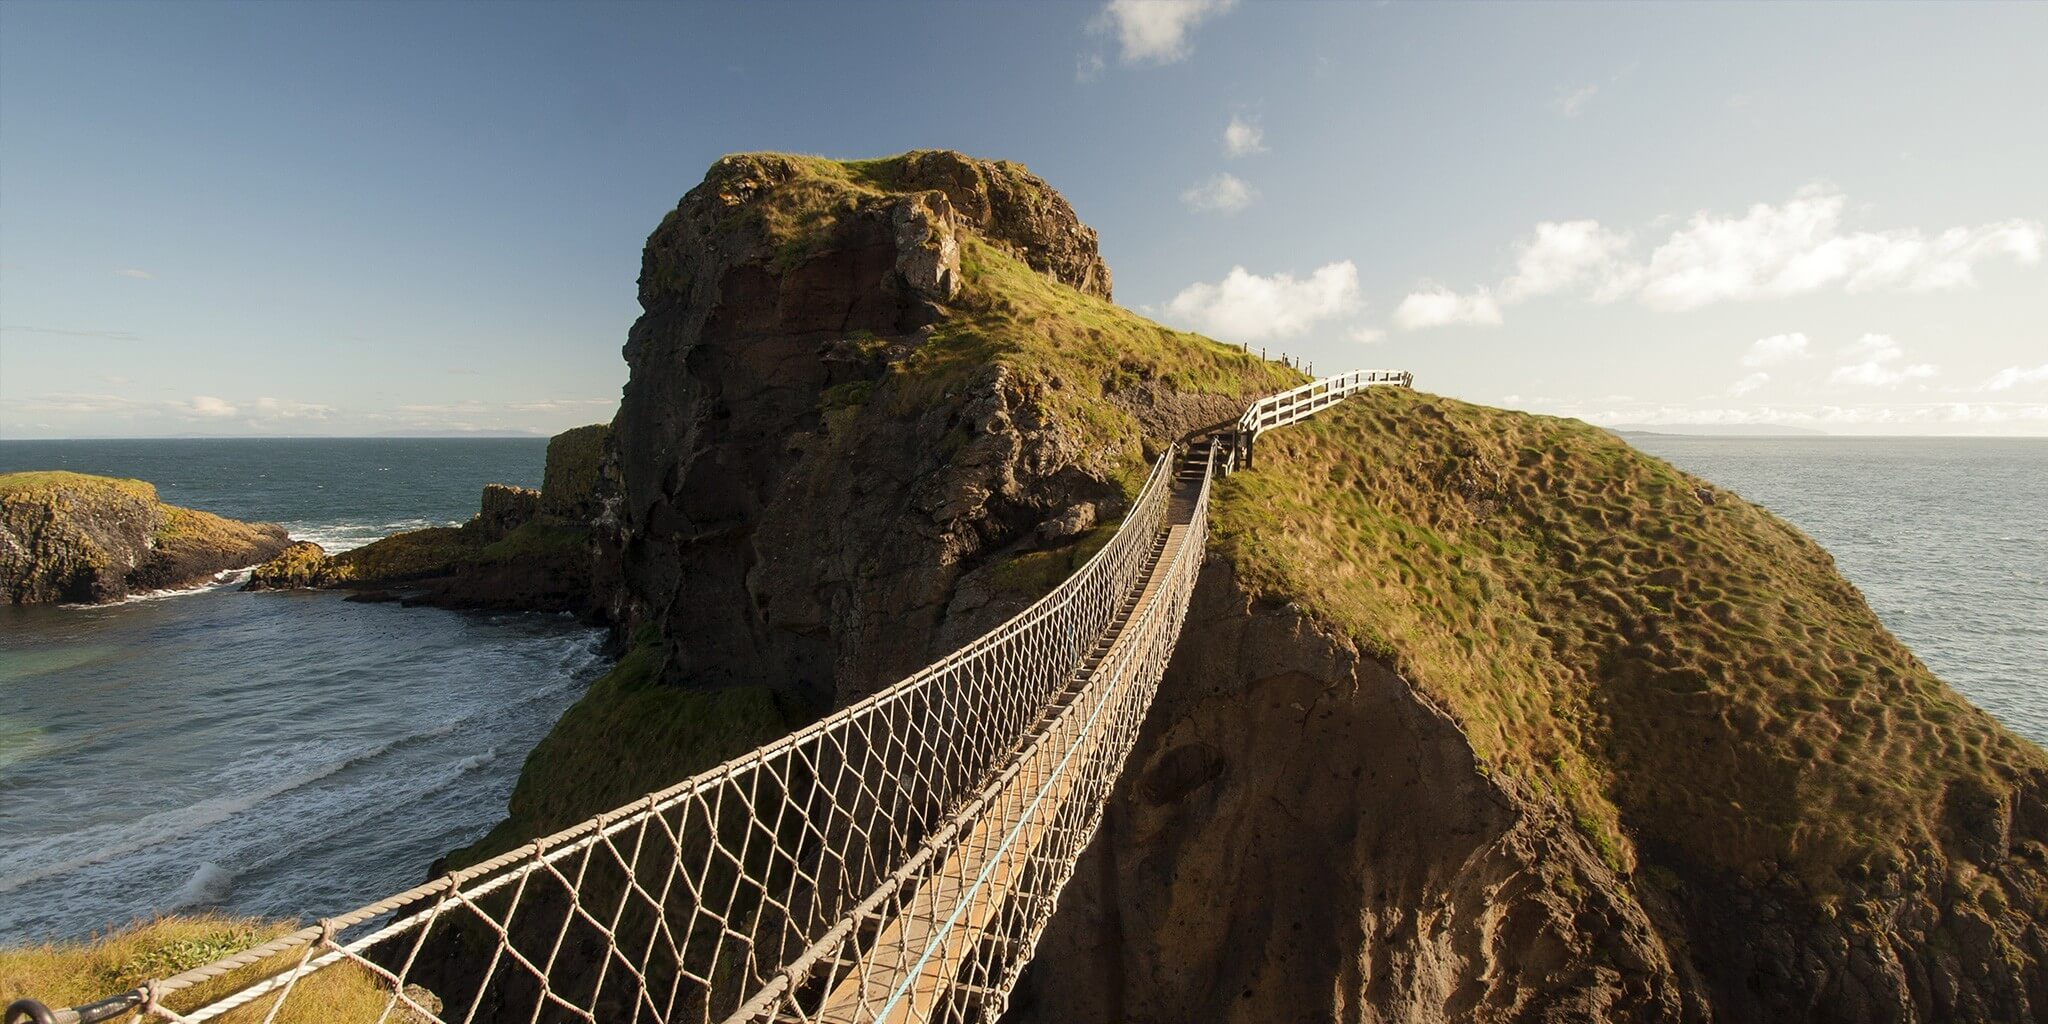 carrick-a-rede-rope-bridge-2048x1024.jpg